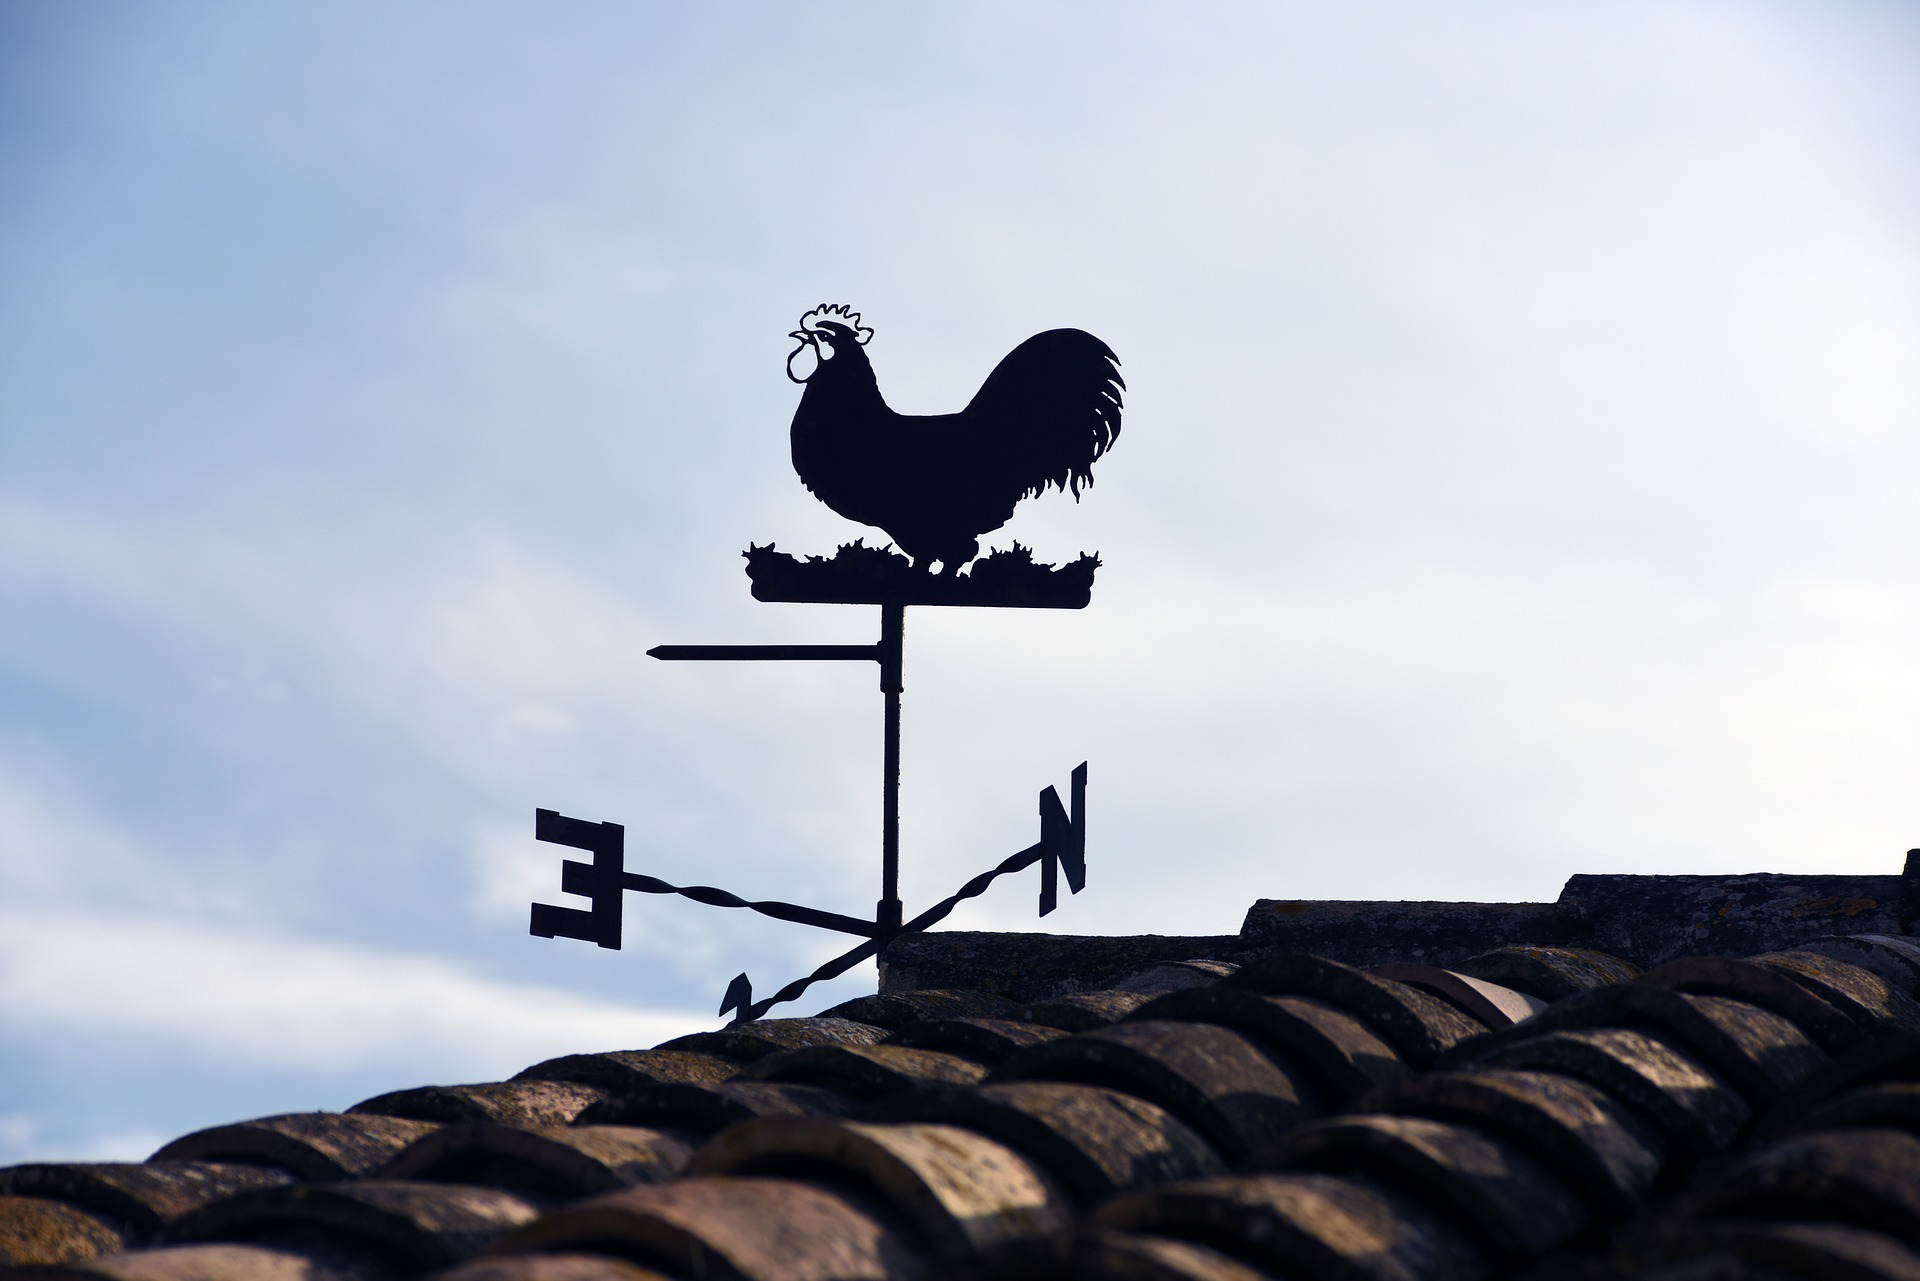 weather-vane-711082_1920.jpg